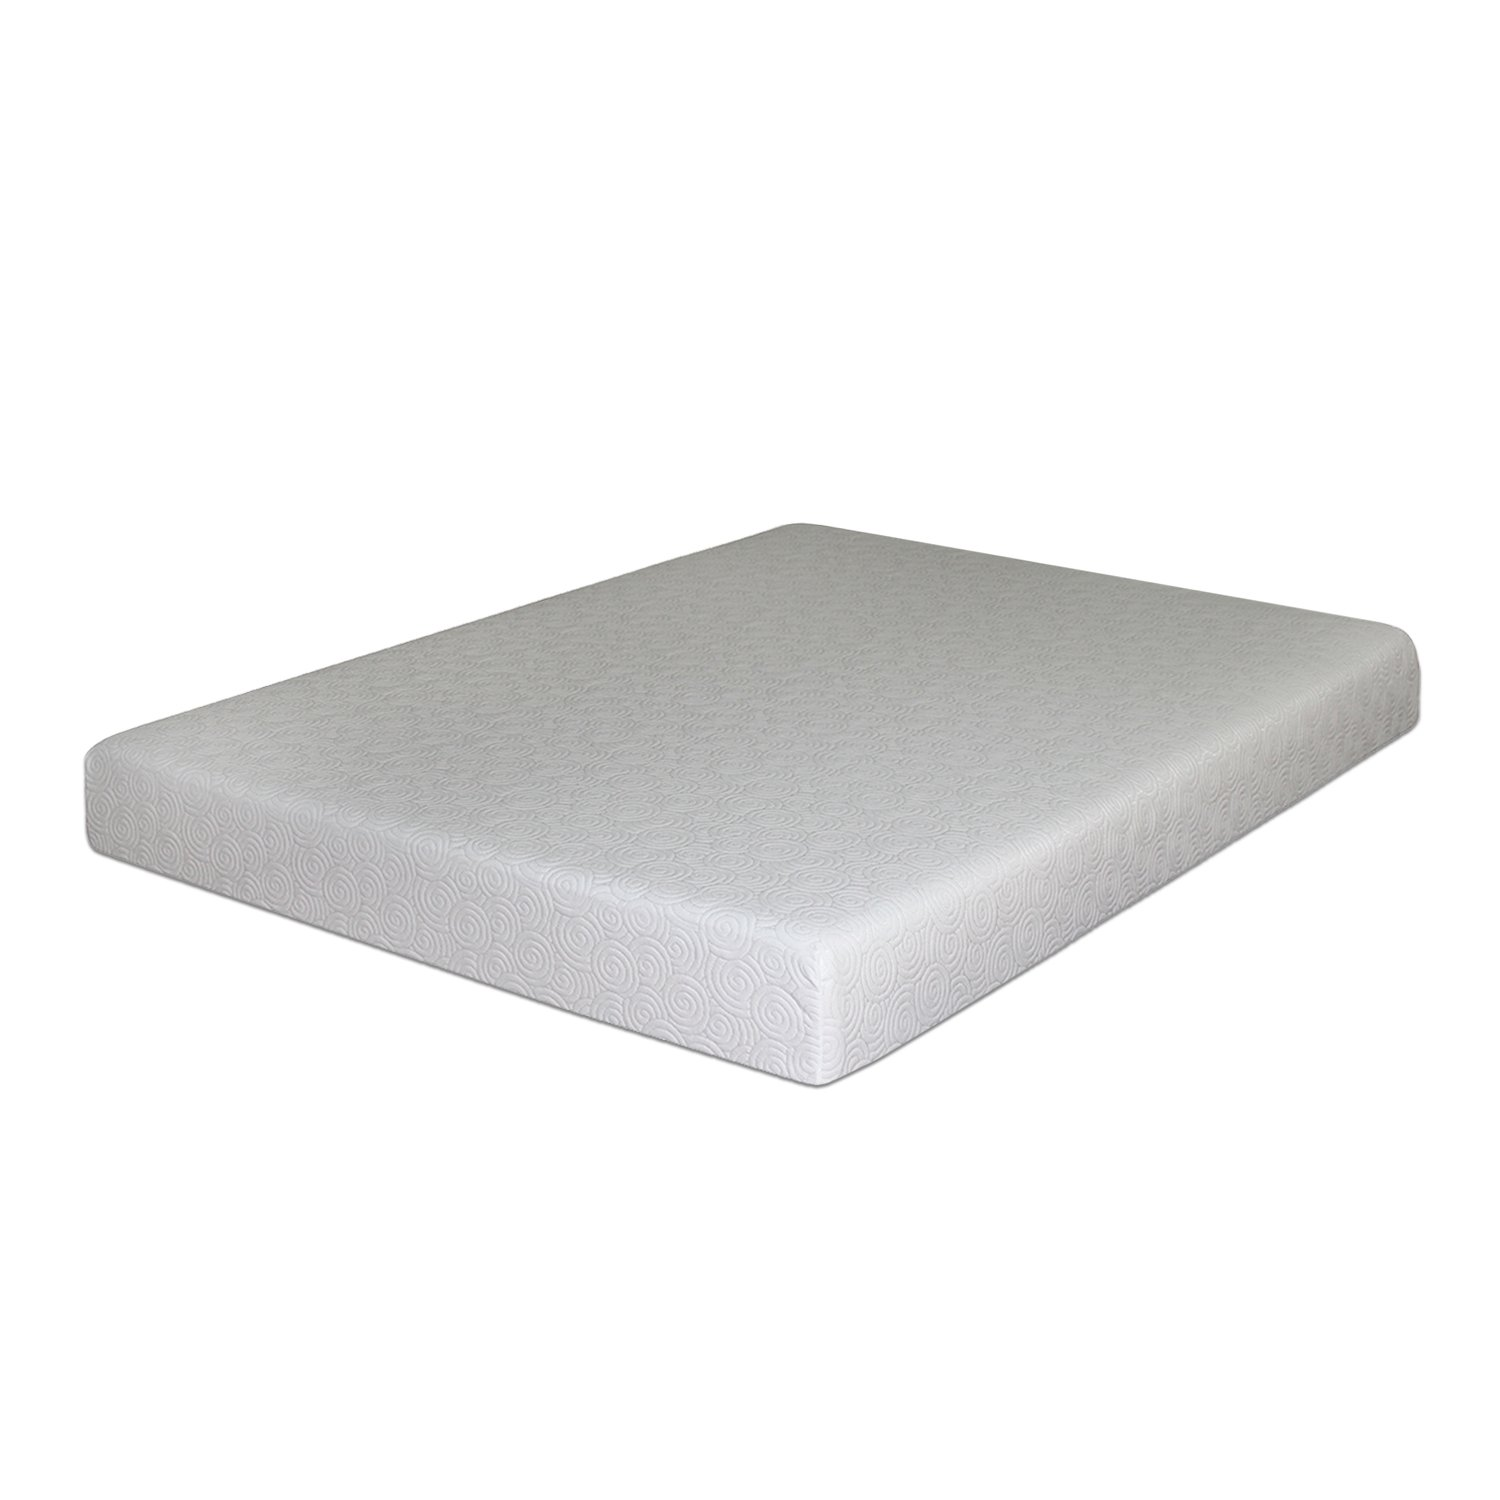 Amazon Best Price Mattress 7 Inch Gel Memory Foam Mattress